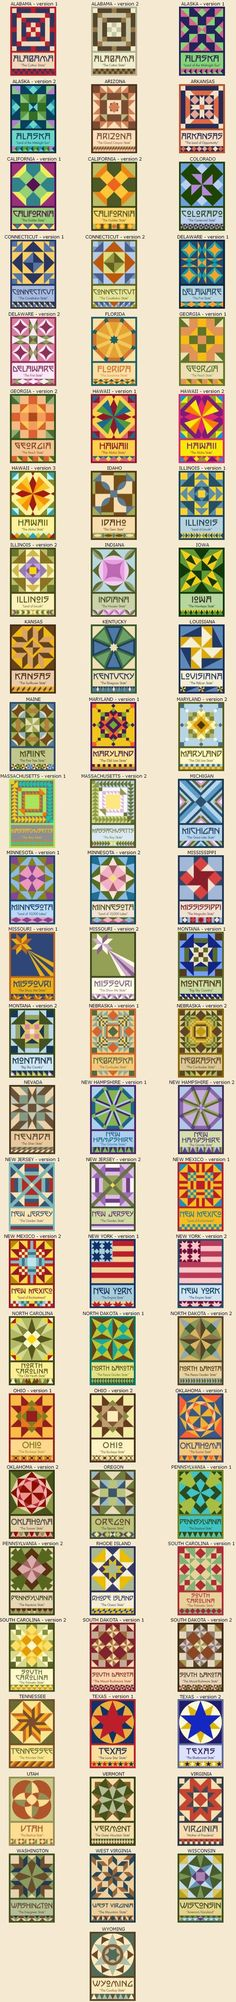 50 State Quilt Block Series by Susan Davis, owner of Olde American Antiques and…